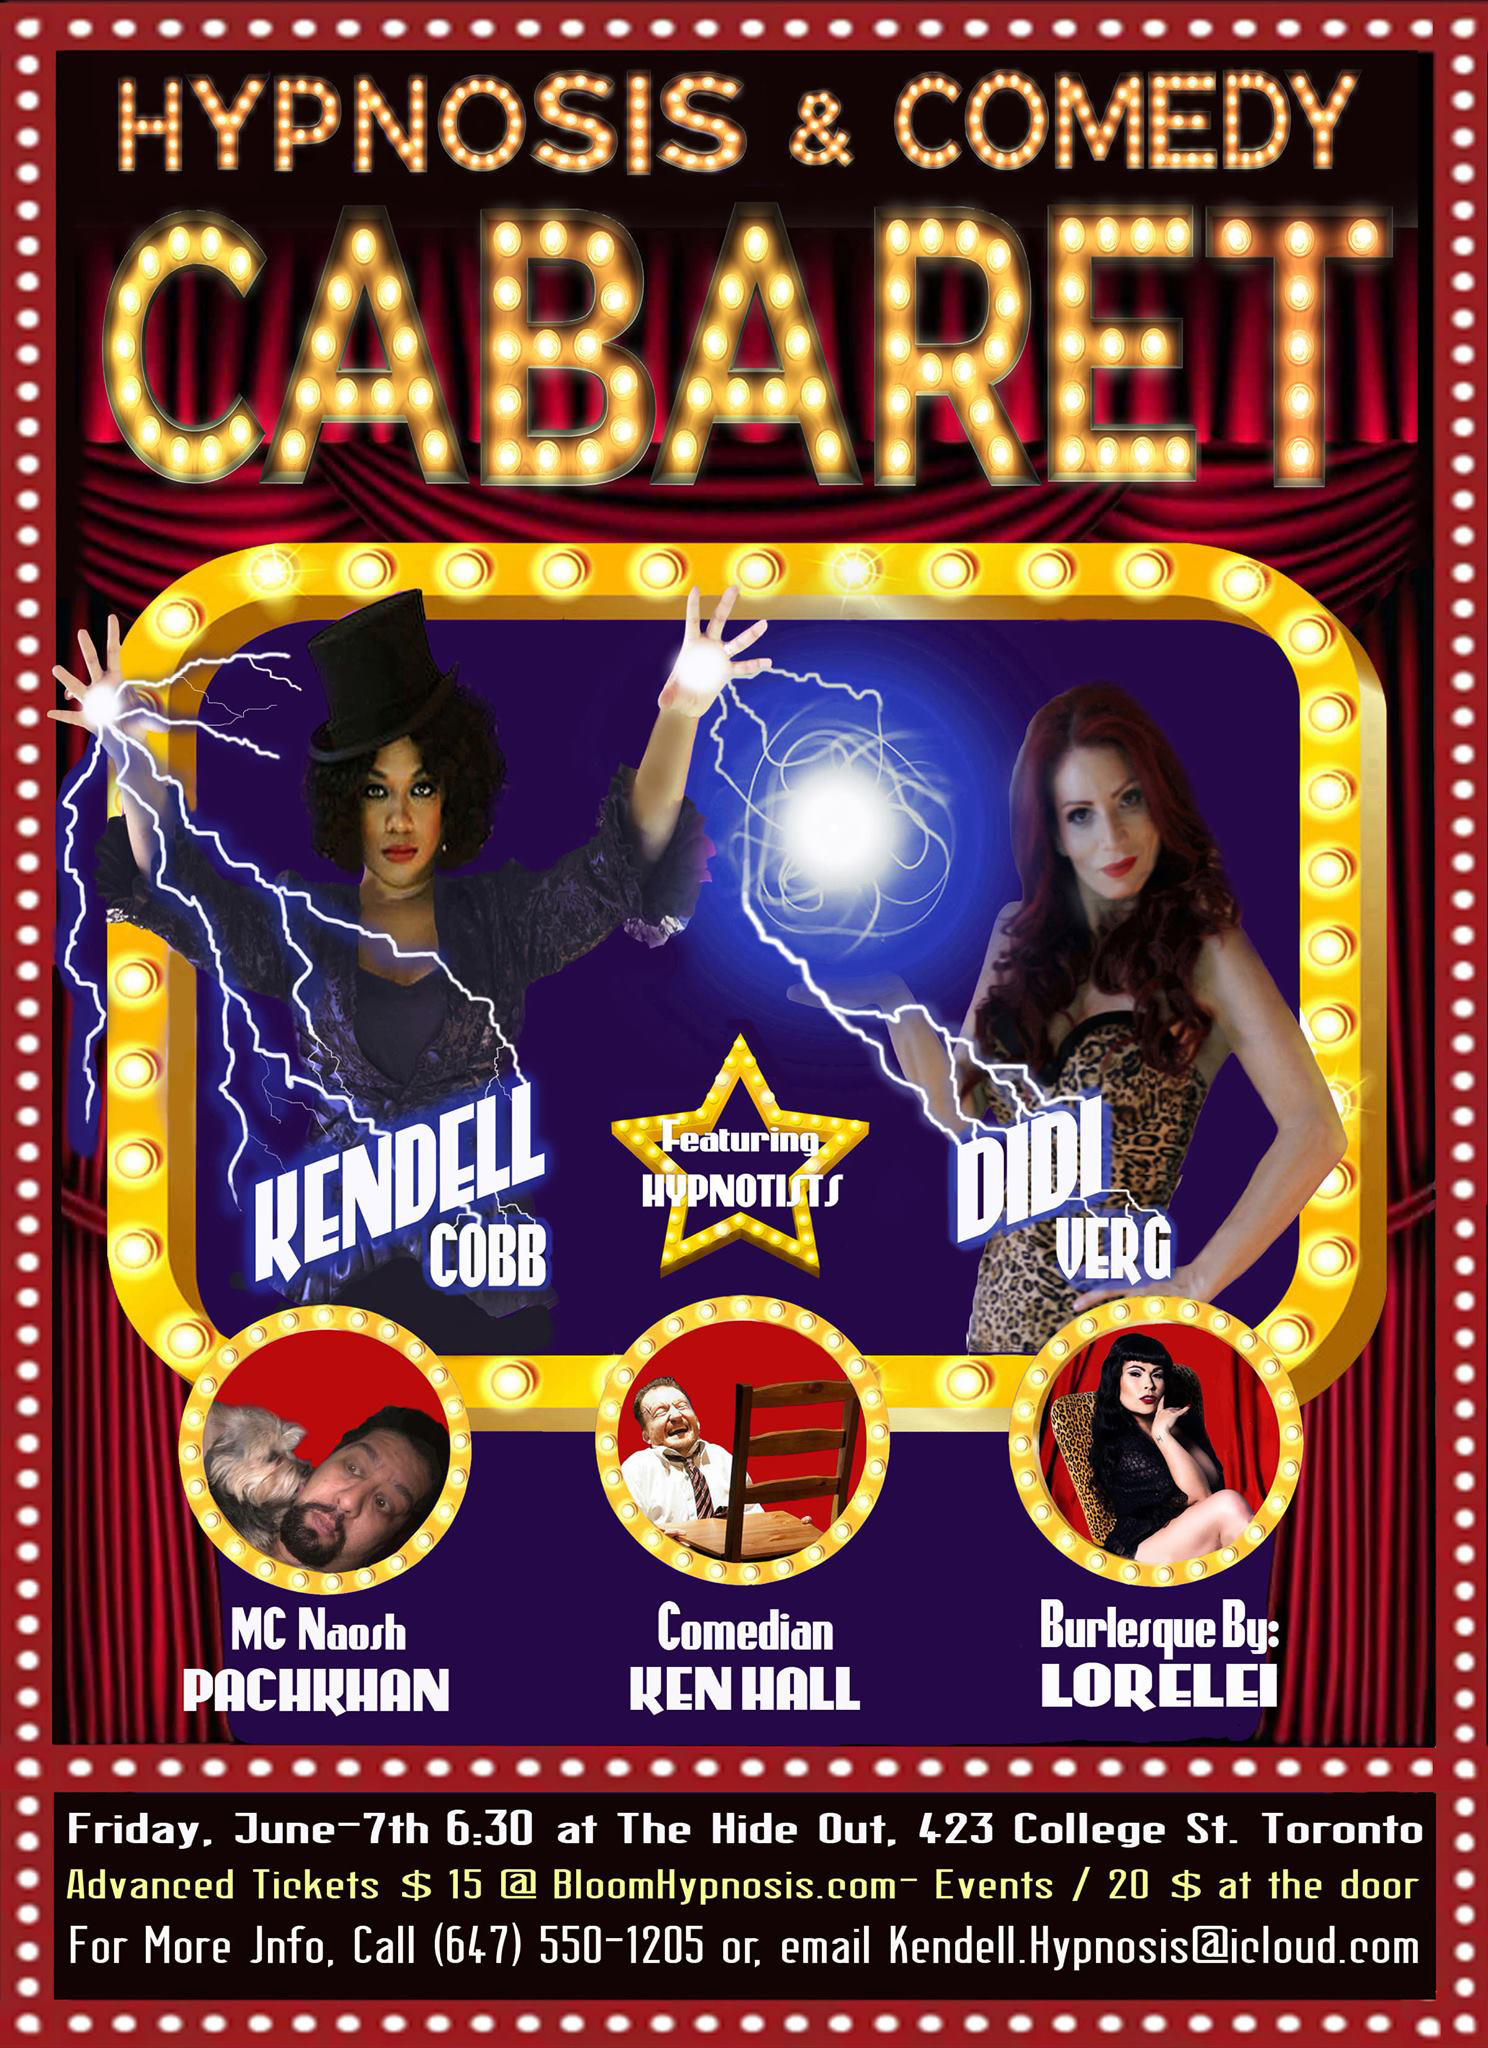 Come join us and really experience the wacky side and power of the mind!  Enjoy a fun filled night with special MC Naosh Pachklan, renowned Canadian Comedian Ken Hall, Burlesque dancer Lorelei and Stage Hypnotists Didi Verg & Kendell Cobb.  Tickets $15 in Advance $20 at the door